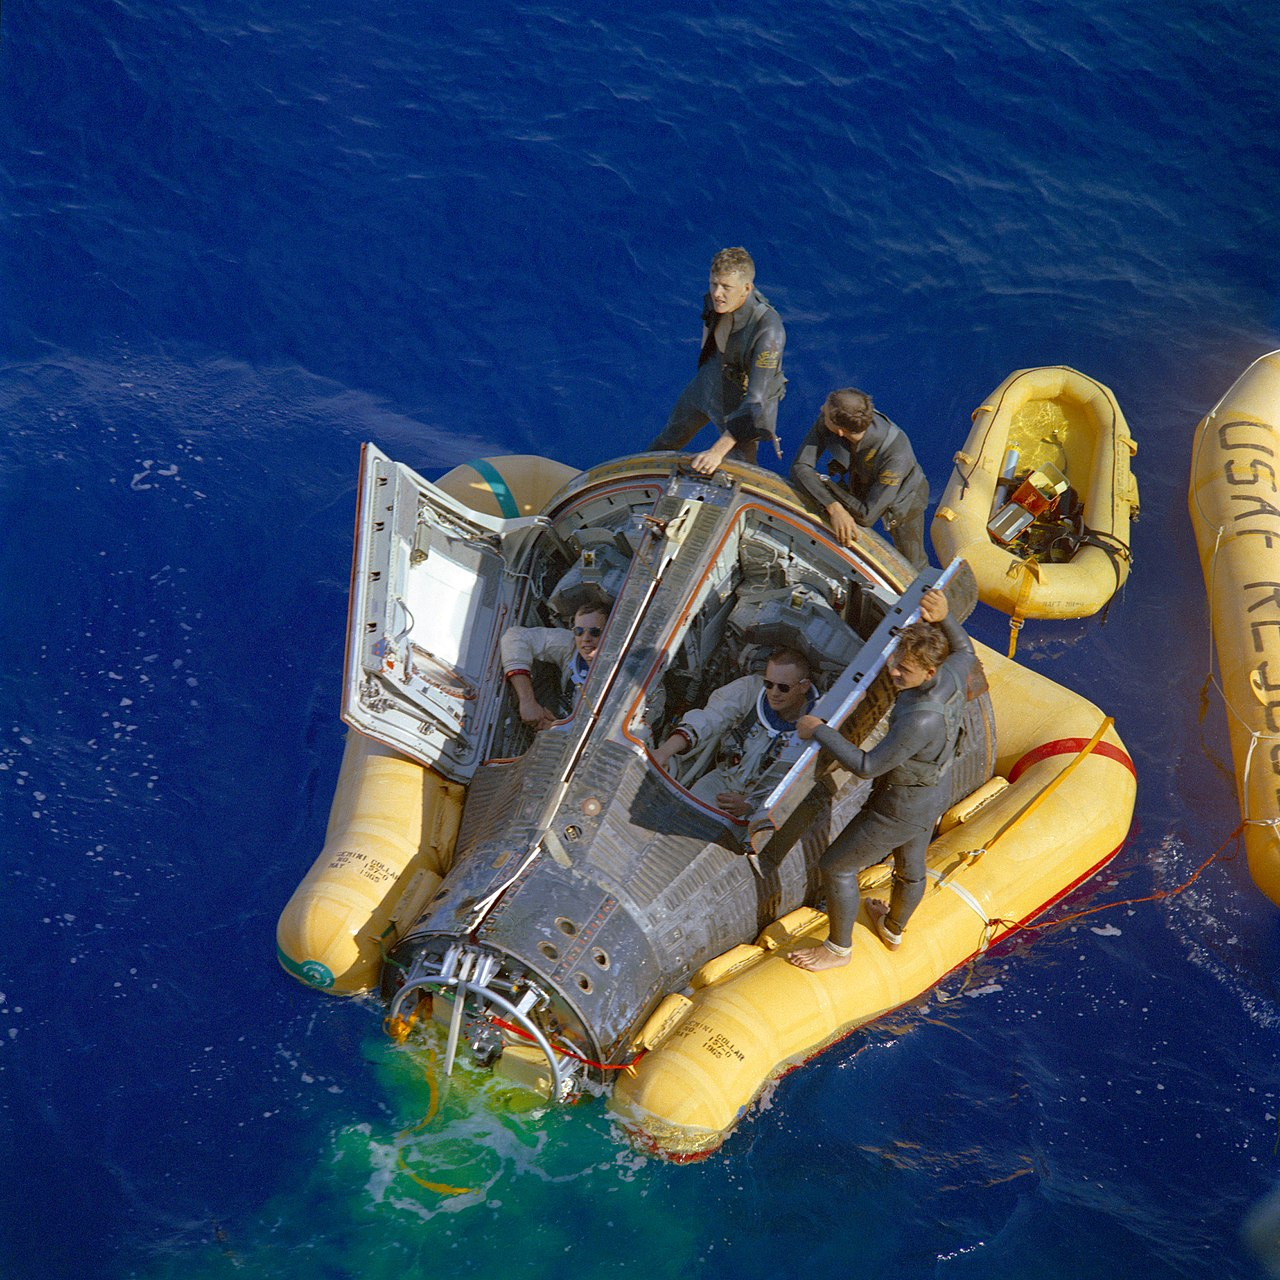 A dark gray Gemini capsule floats horizontally in blue water. It is supported by a yellow flotation collar. The hatches are open and the astronauts are visible sitting in their places wearing sunglasses. They are being assisted by three recovery crew in dark gray wetsuits.